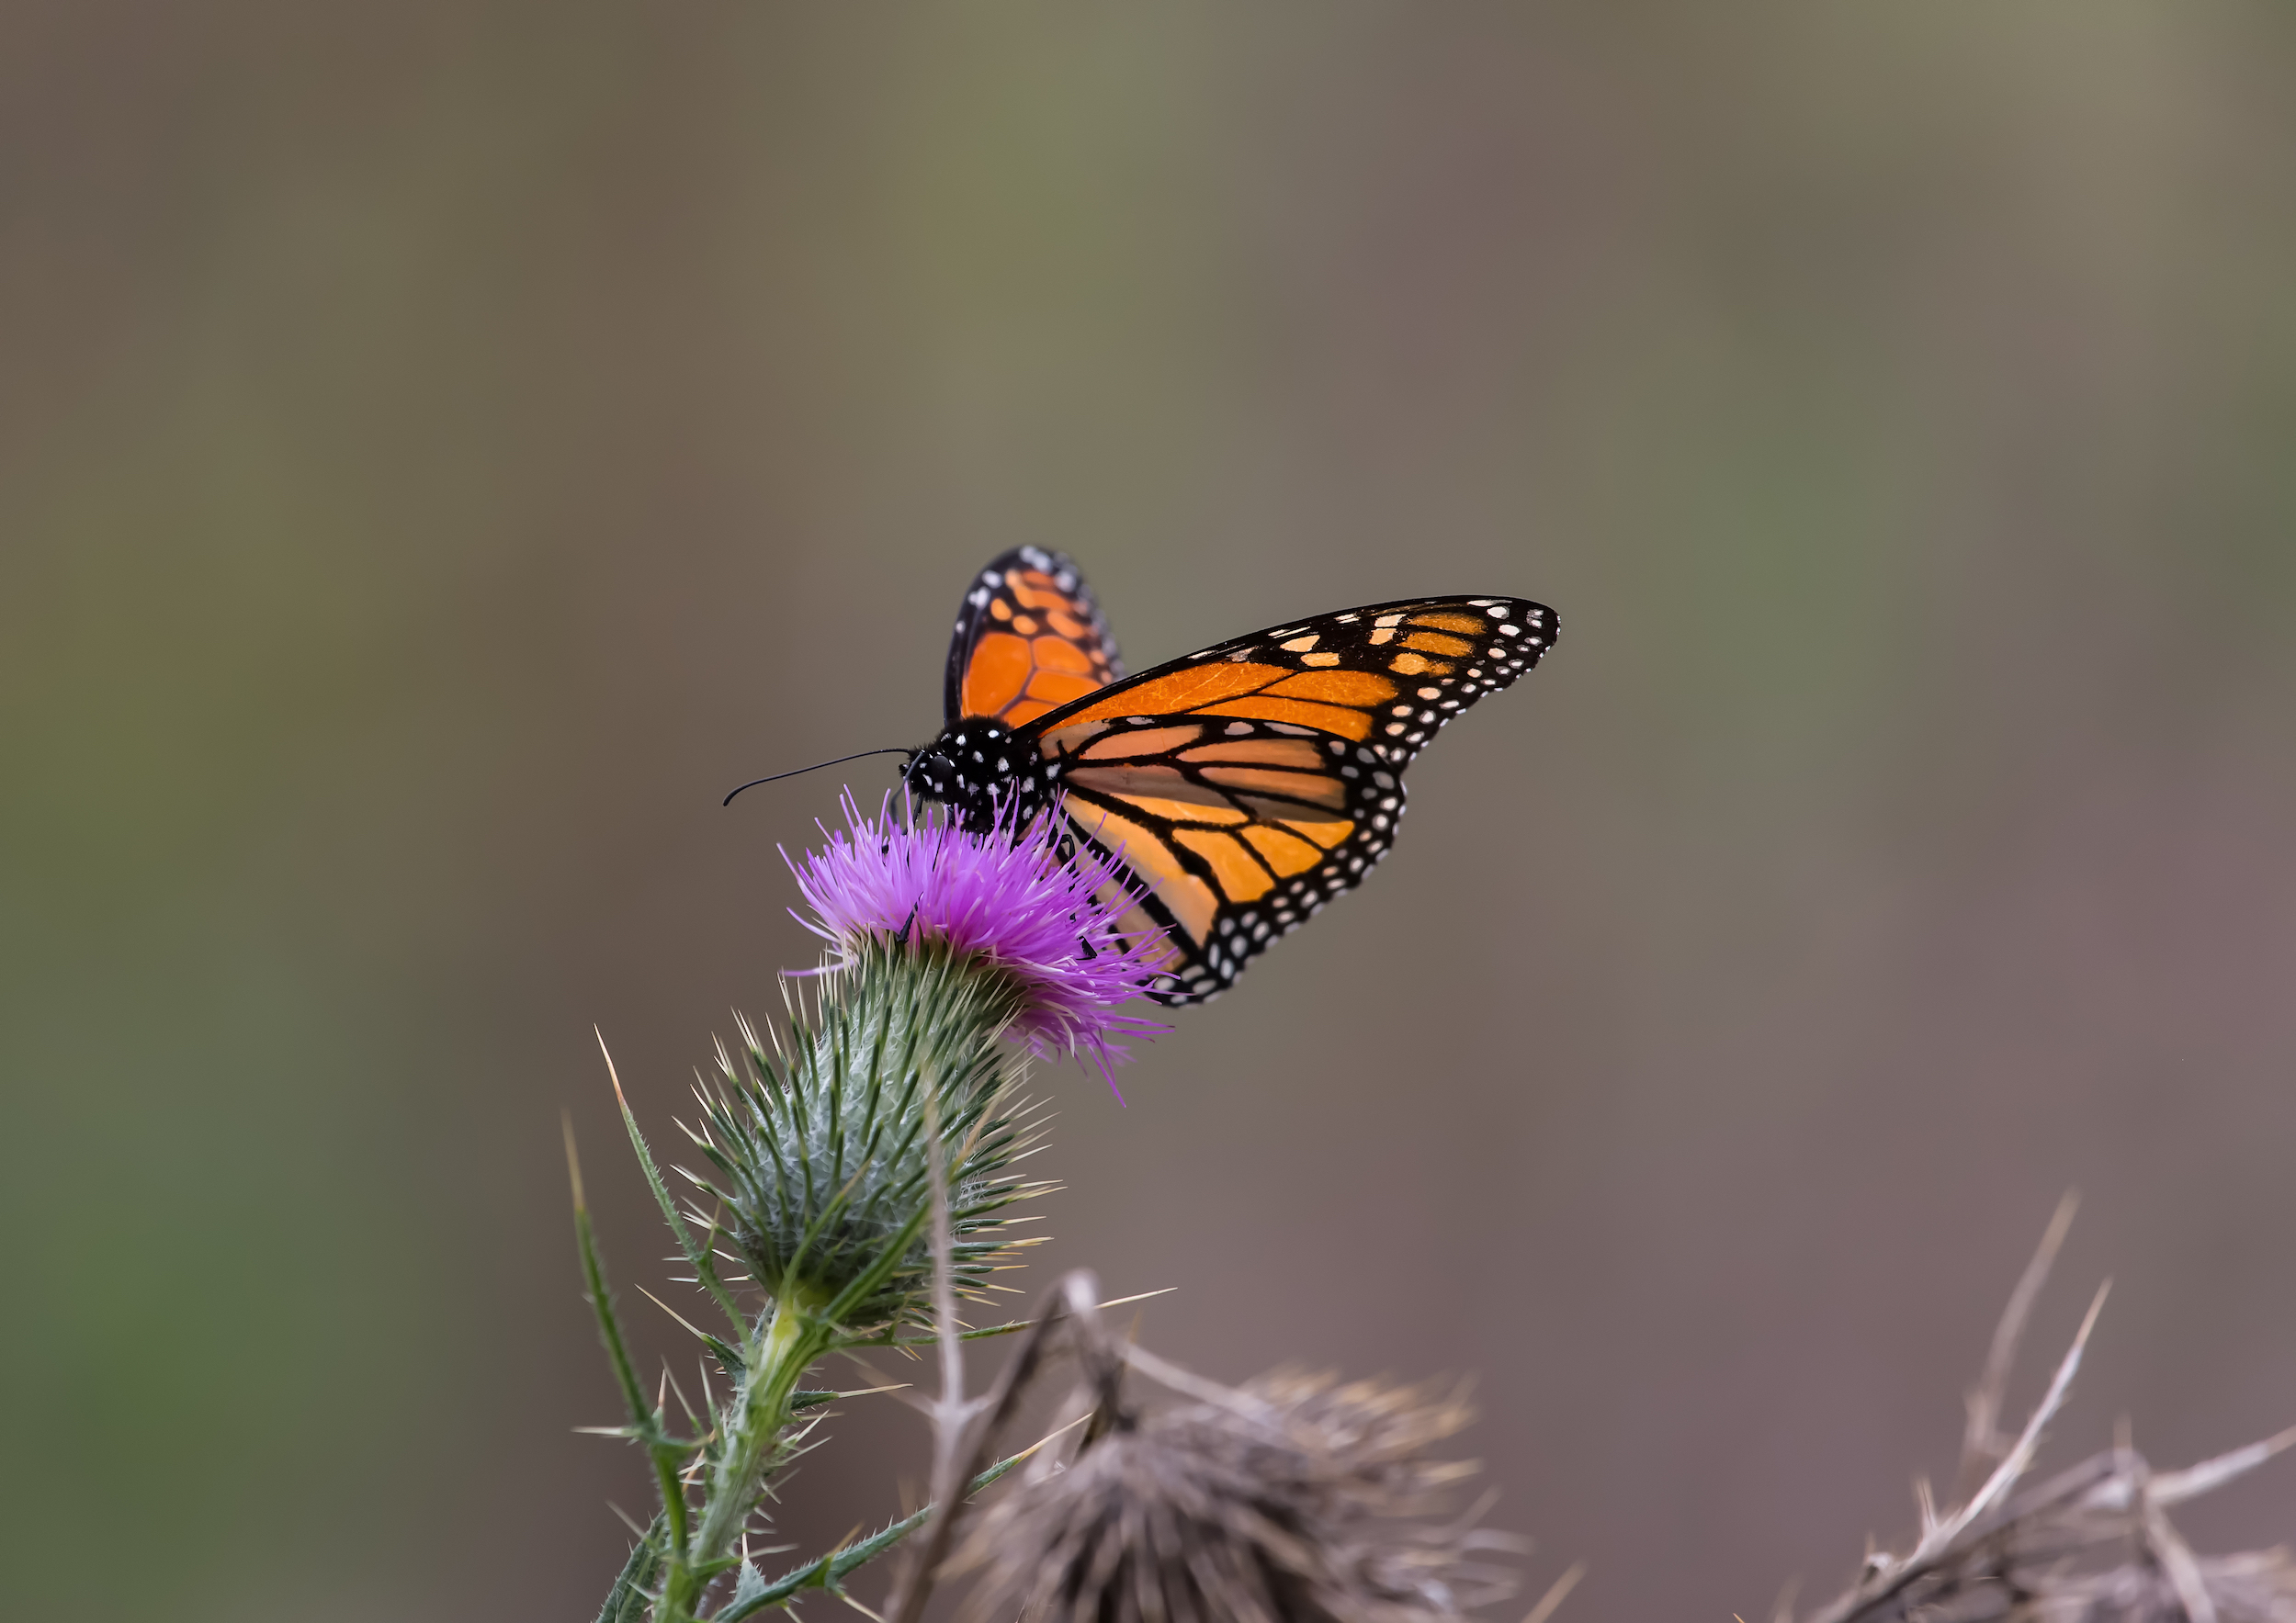 Western monarch butterflies are reaching unprecedented levels of endangerment, and their populations are much lower than previously realized.